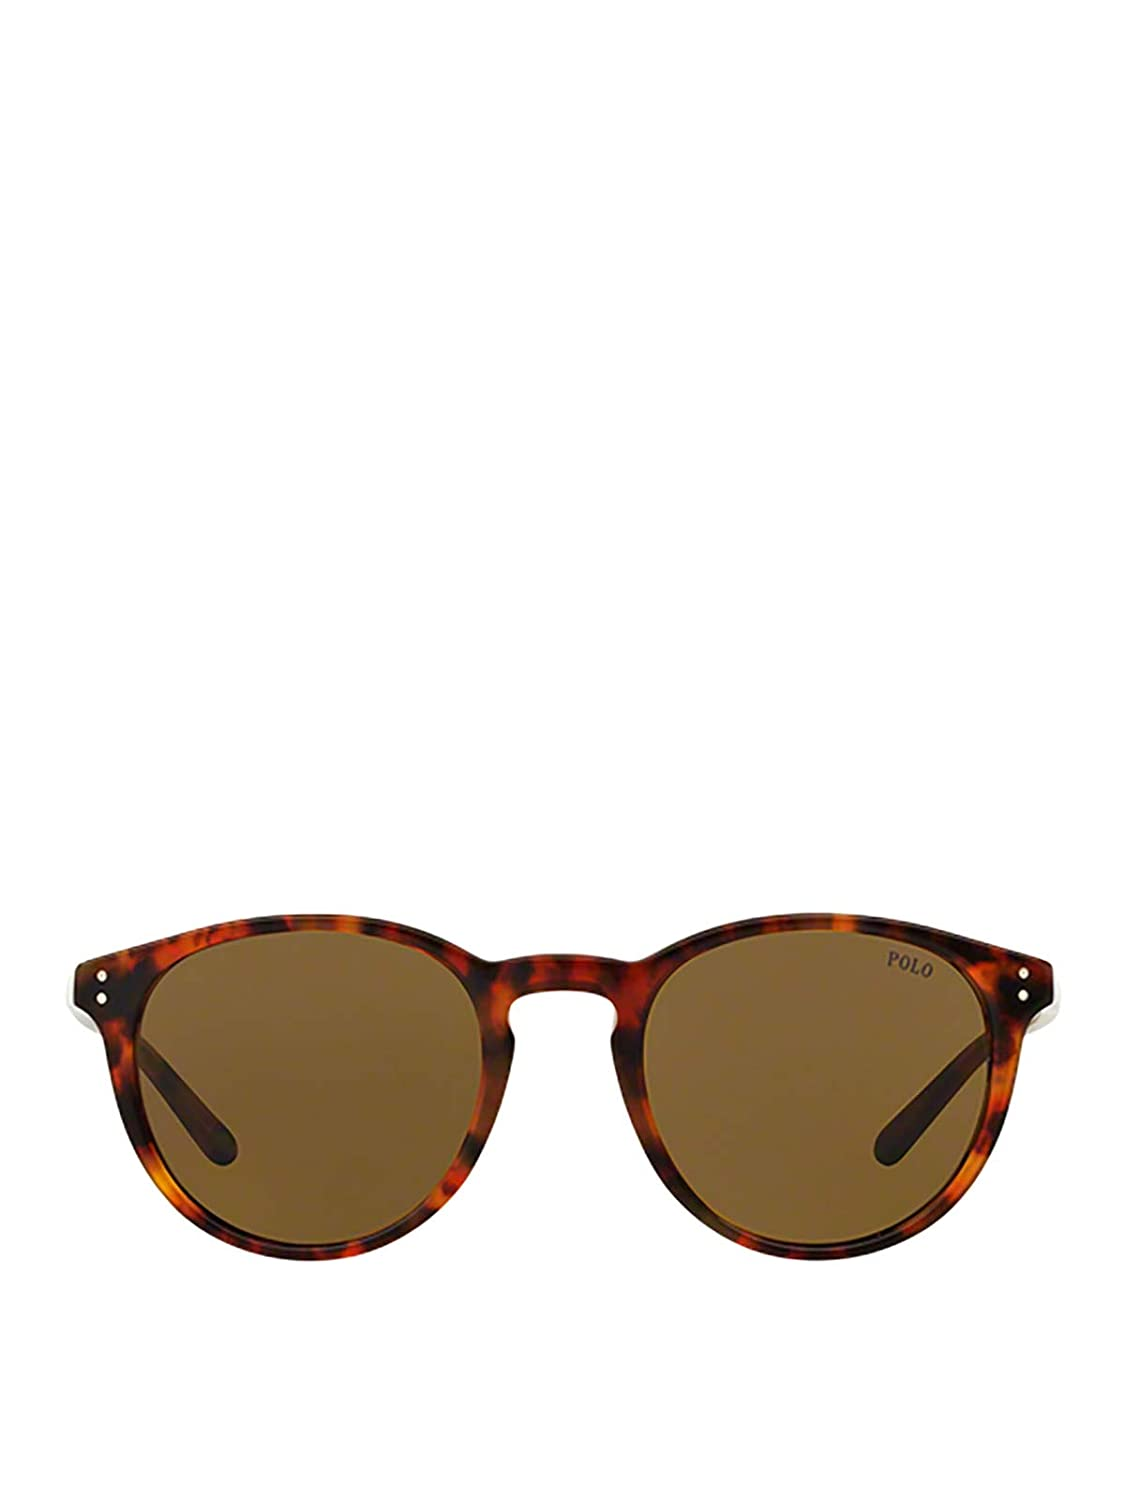 POLO RALPH LAUREN Gafas De Sol - Jerry, 50: Amazon.es: Ropa y ...